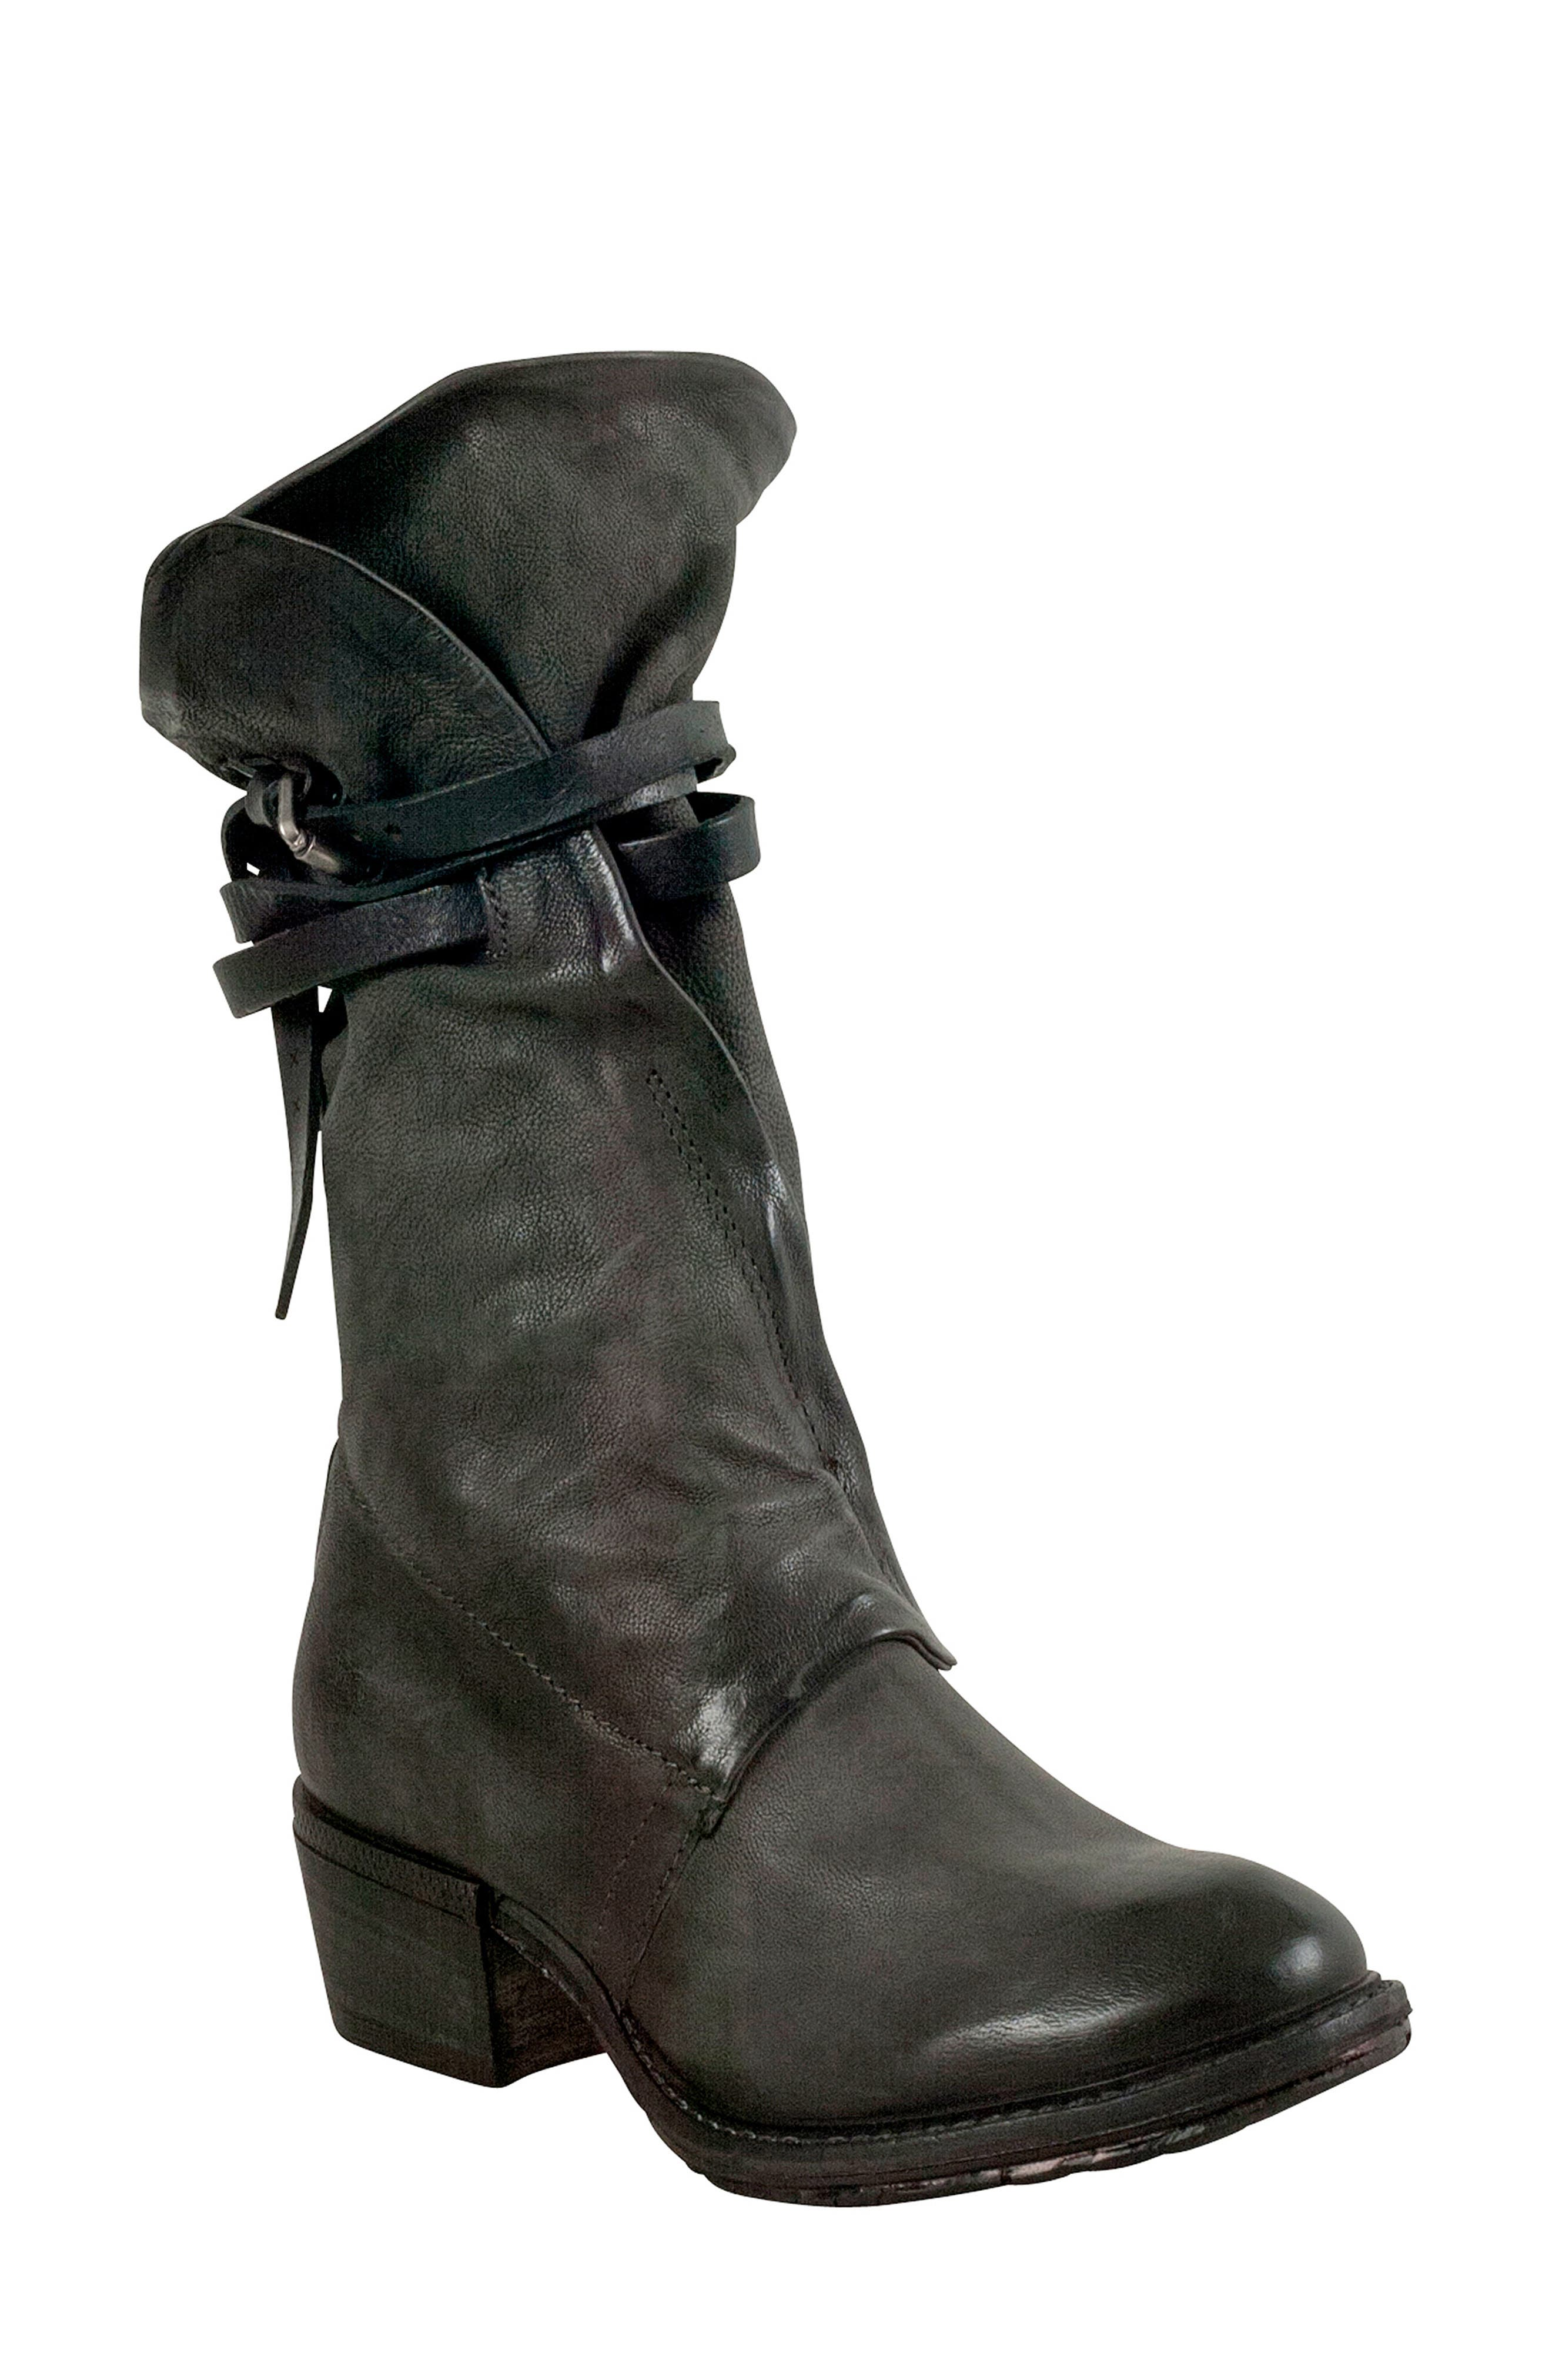 A.S.98 Carter Boot in Smoke